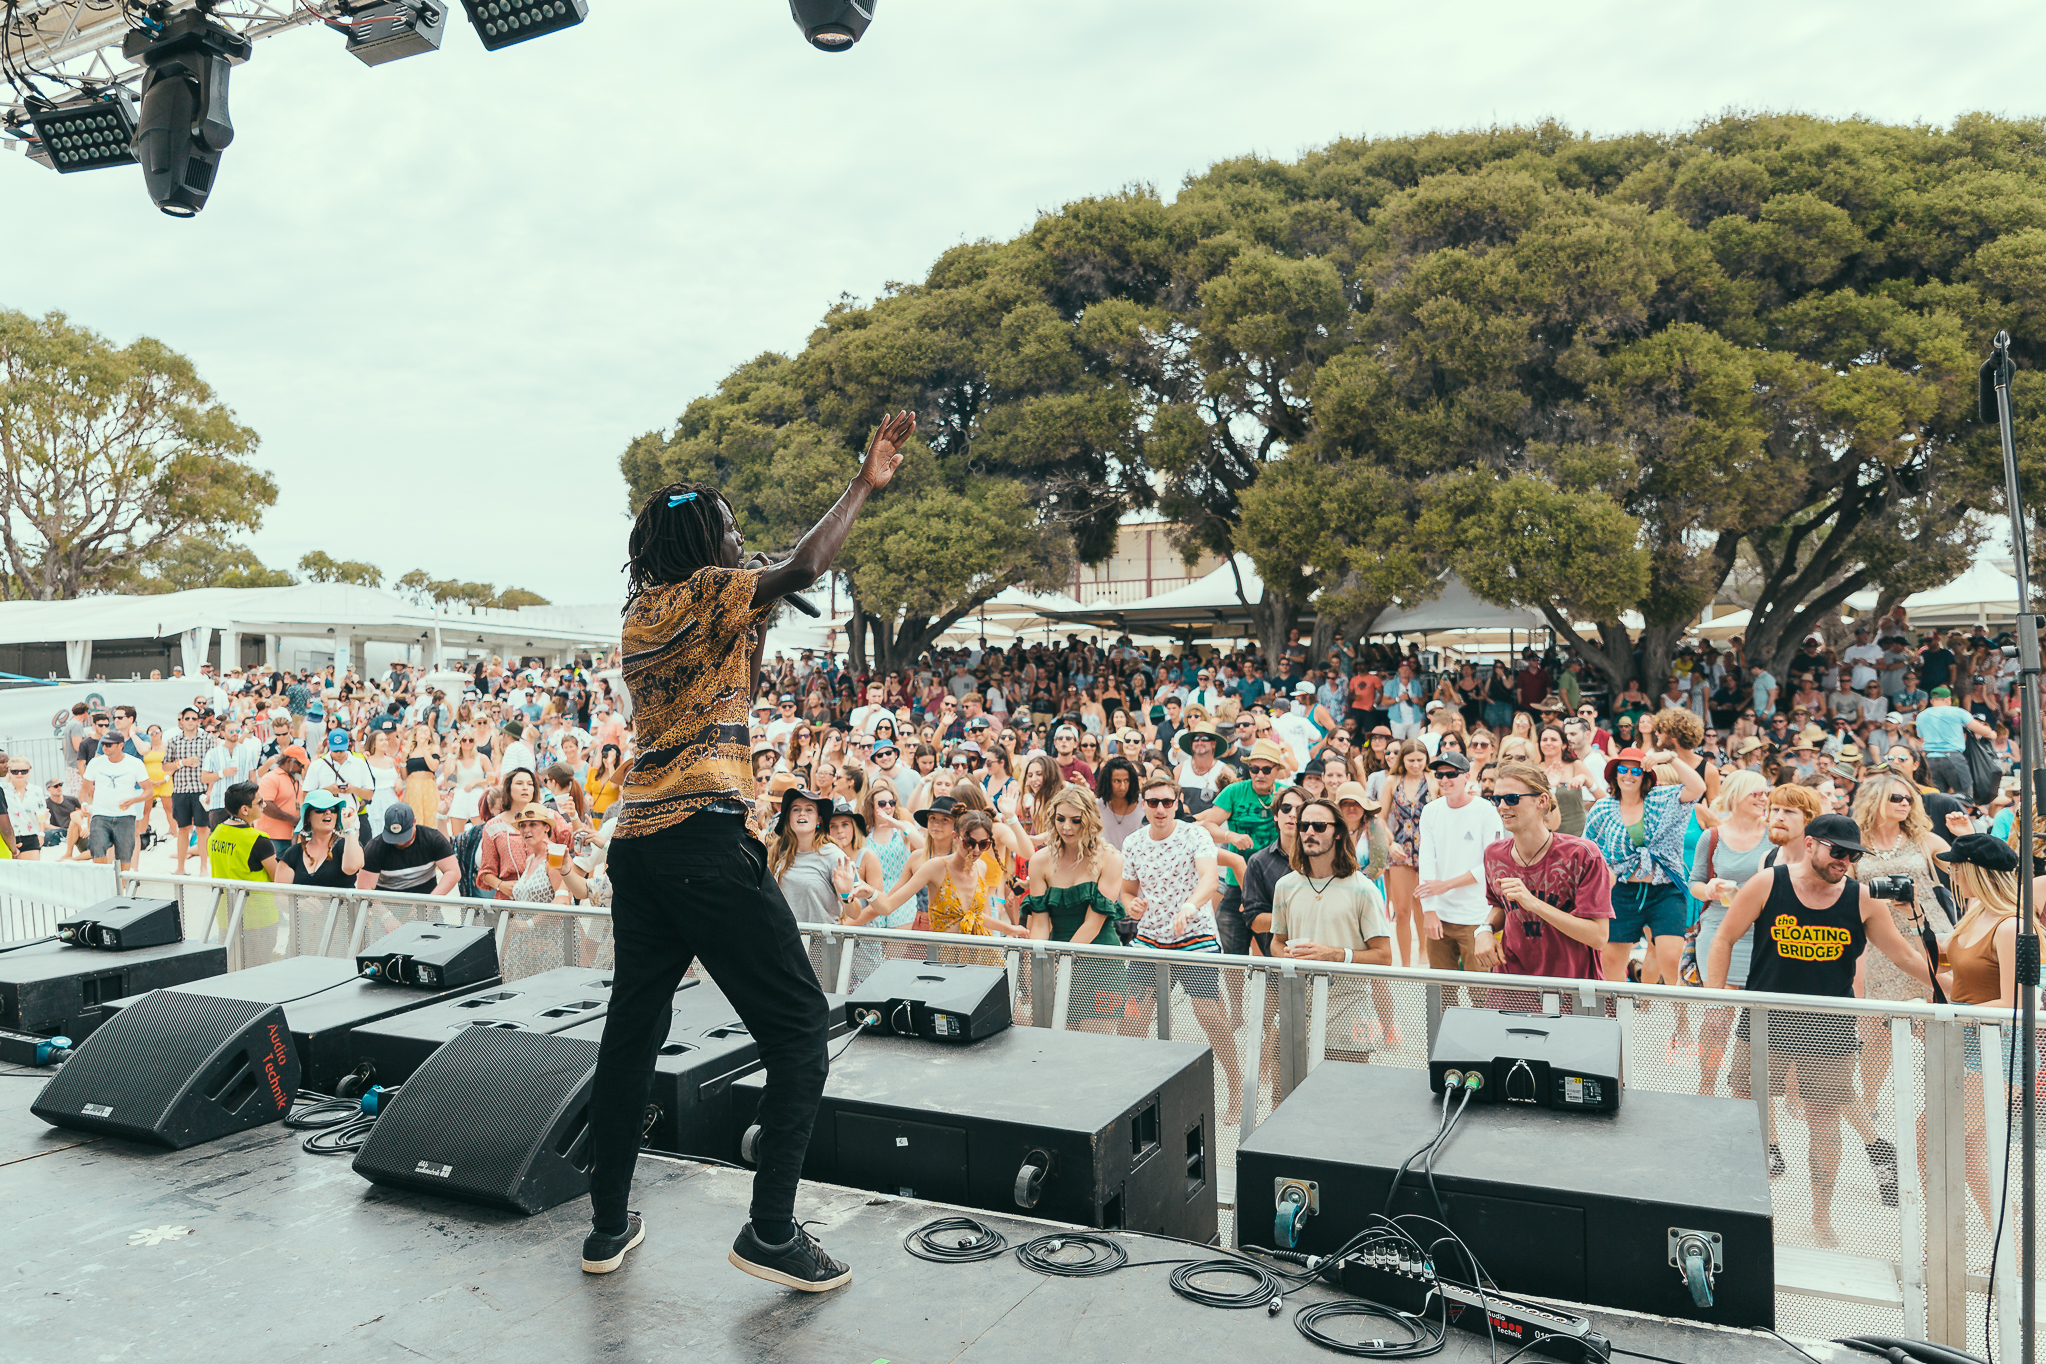 rottnest crowd 2.jpg